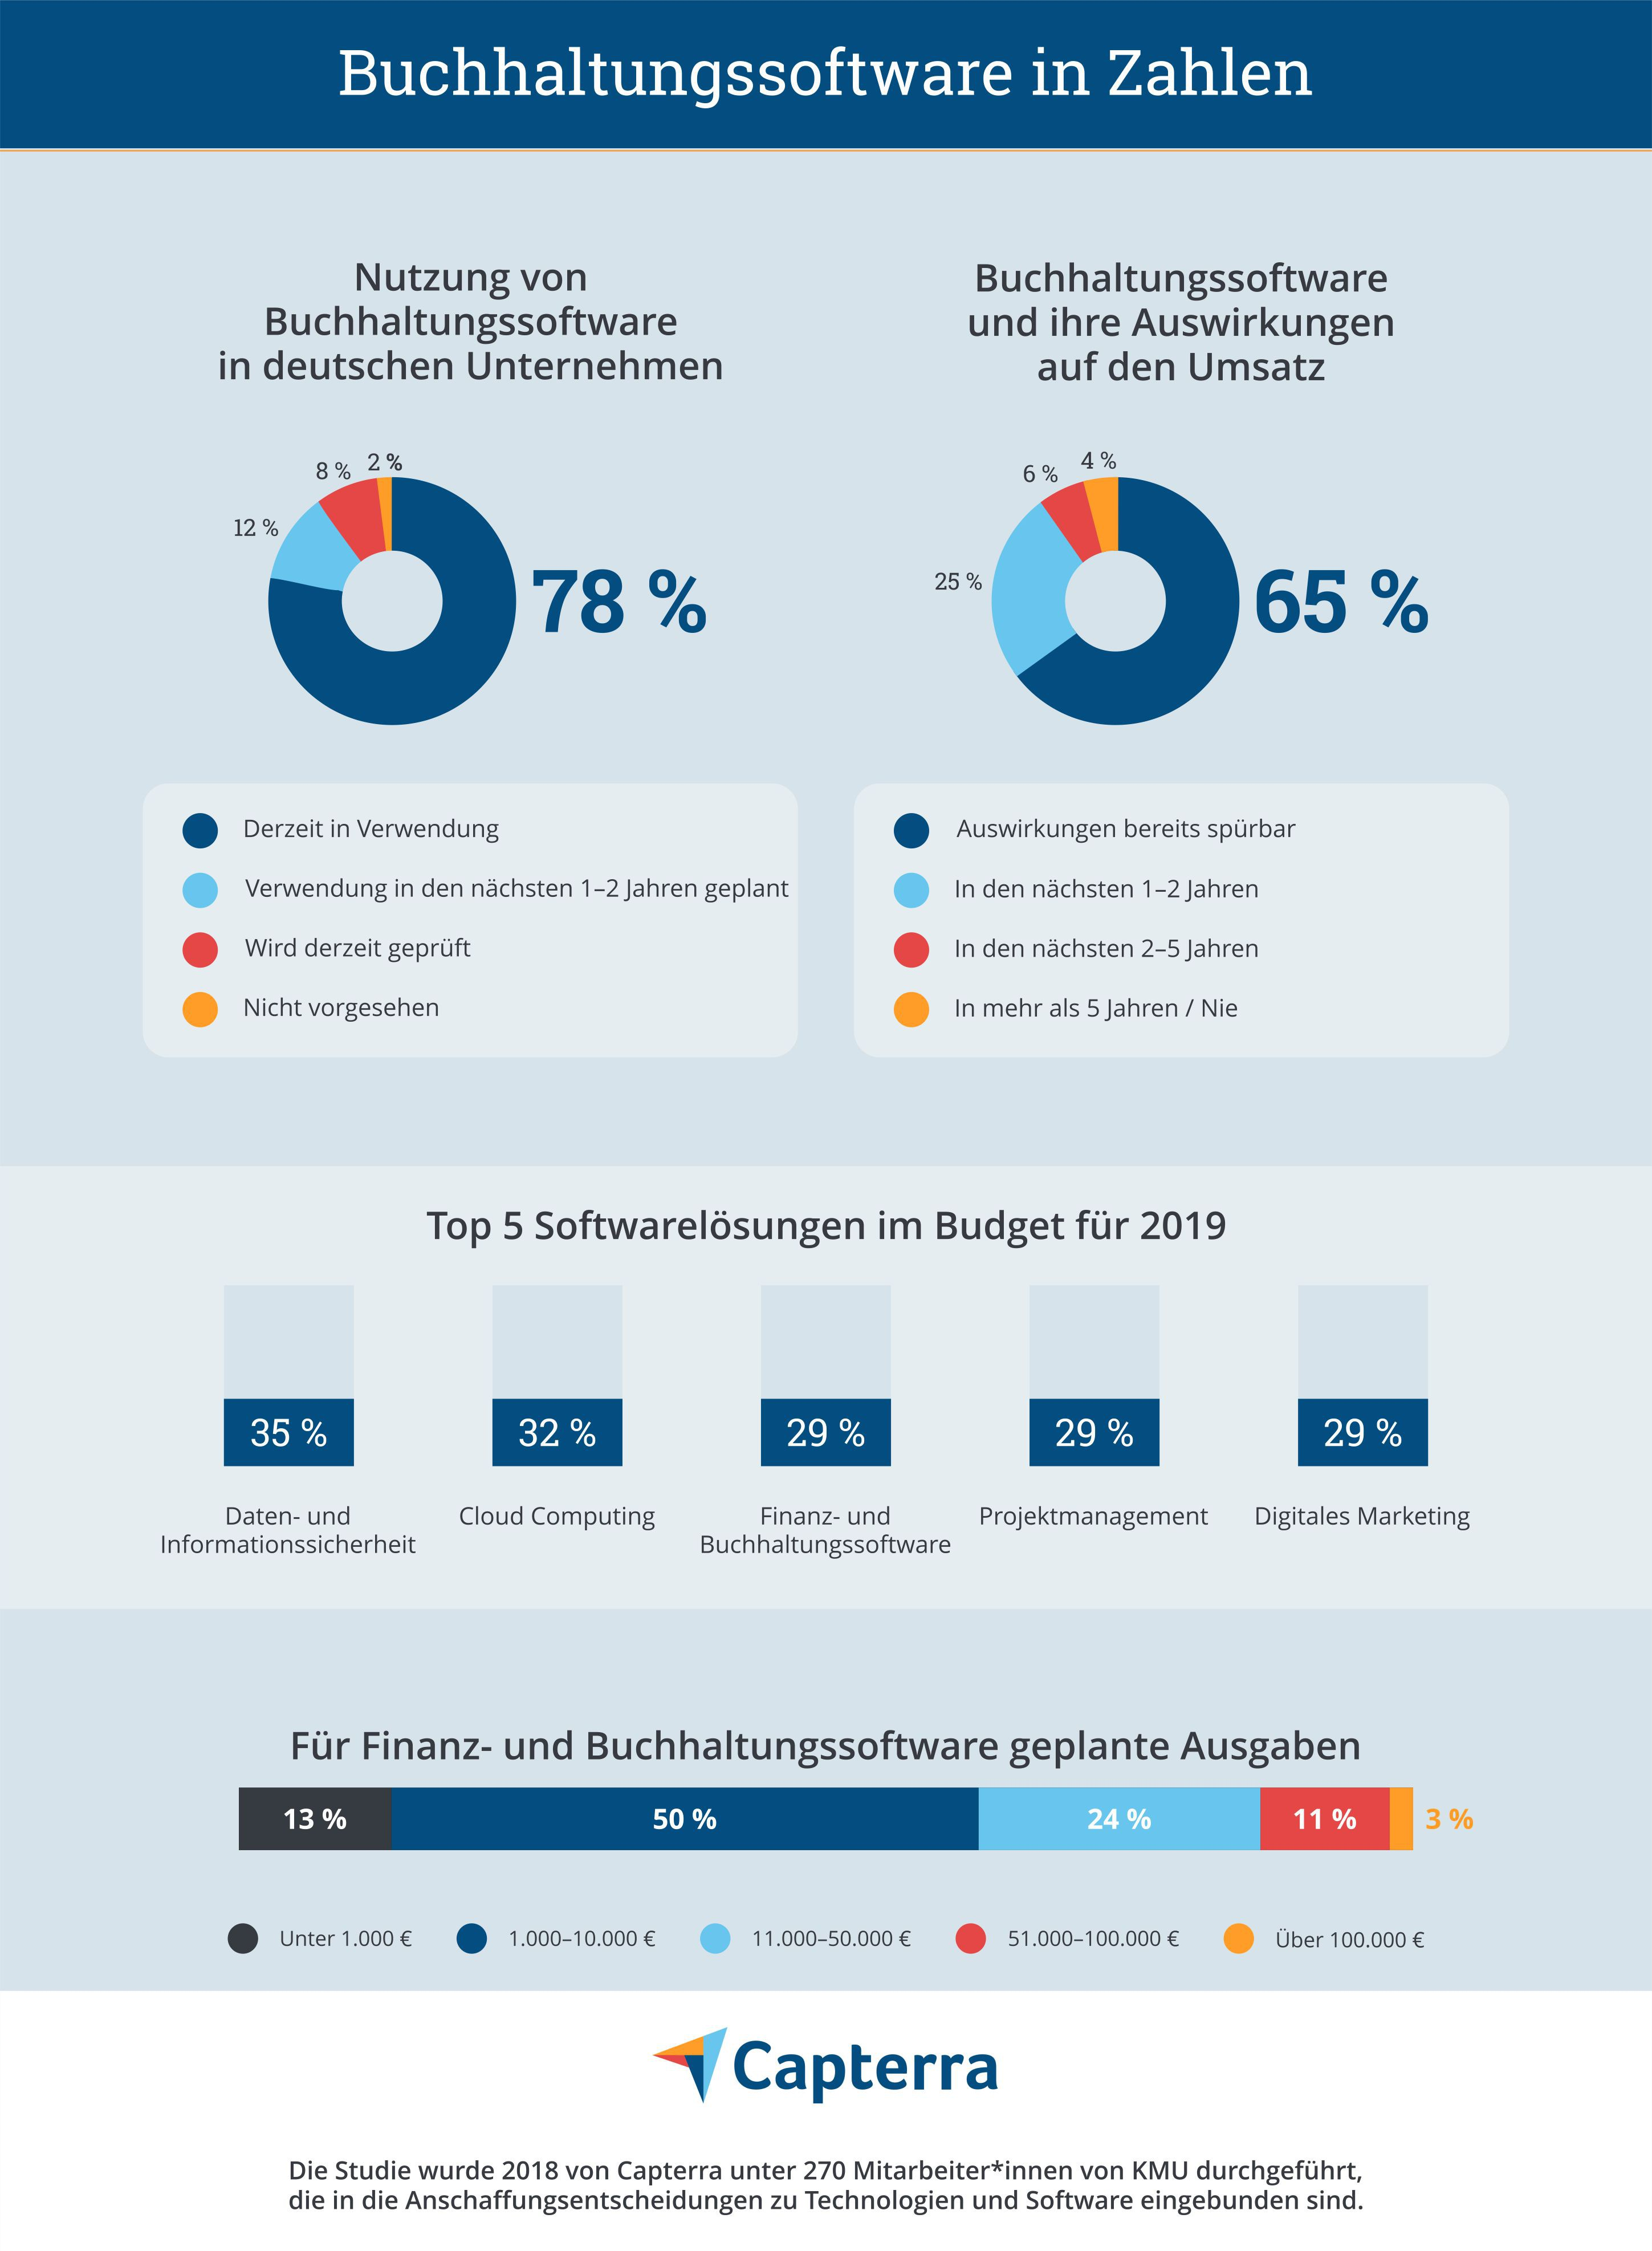 Adapt French Infographic about accounting software usage with provided German translation